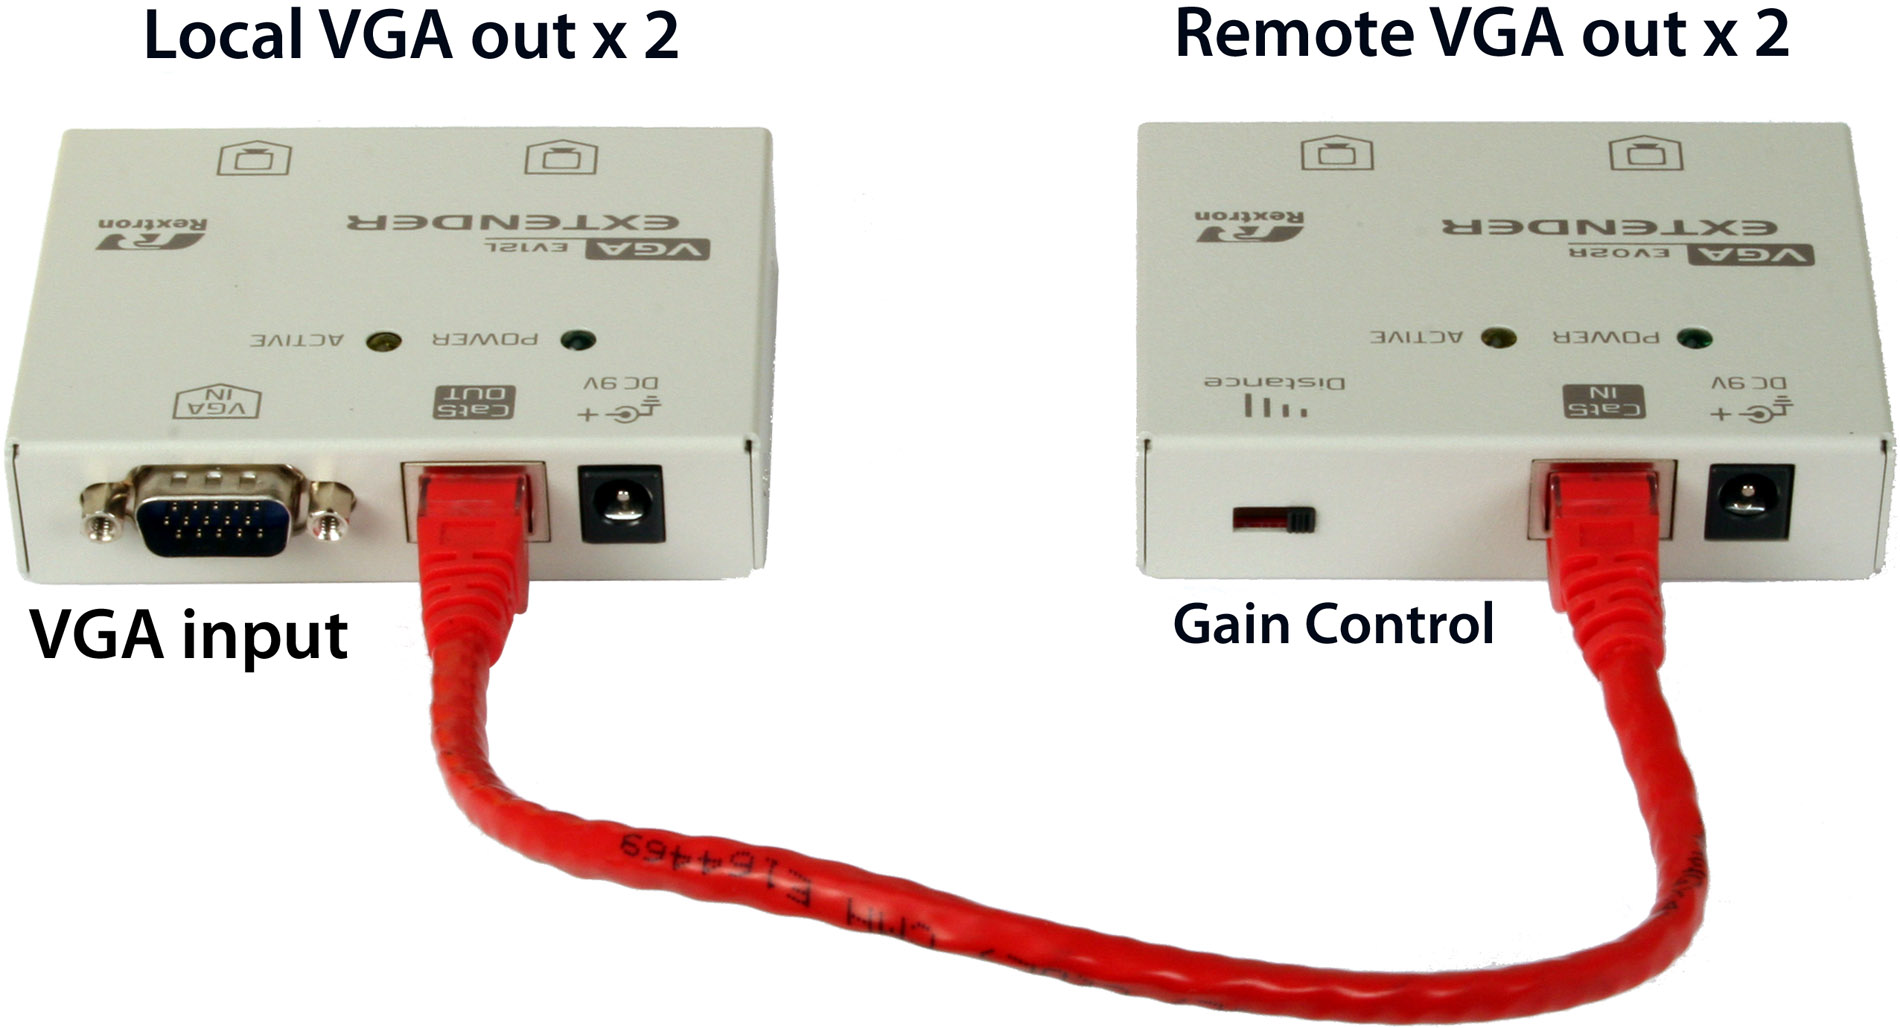 Verizon Phone Junction Box Wiring Diagram in addition Phone Jack Wiring Diagram For Dsl together with Wiring Diagram For  work Interface Device in addition Sound Hdmi Cable Wiring Diagram also Telephone Work Interface Device Box Wiring Diagram. on telephone work interface device box wiring diagram